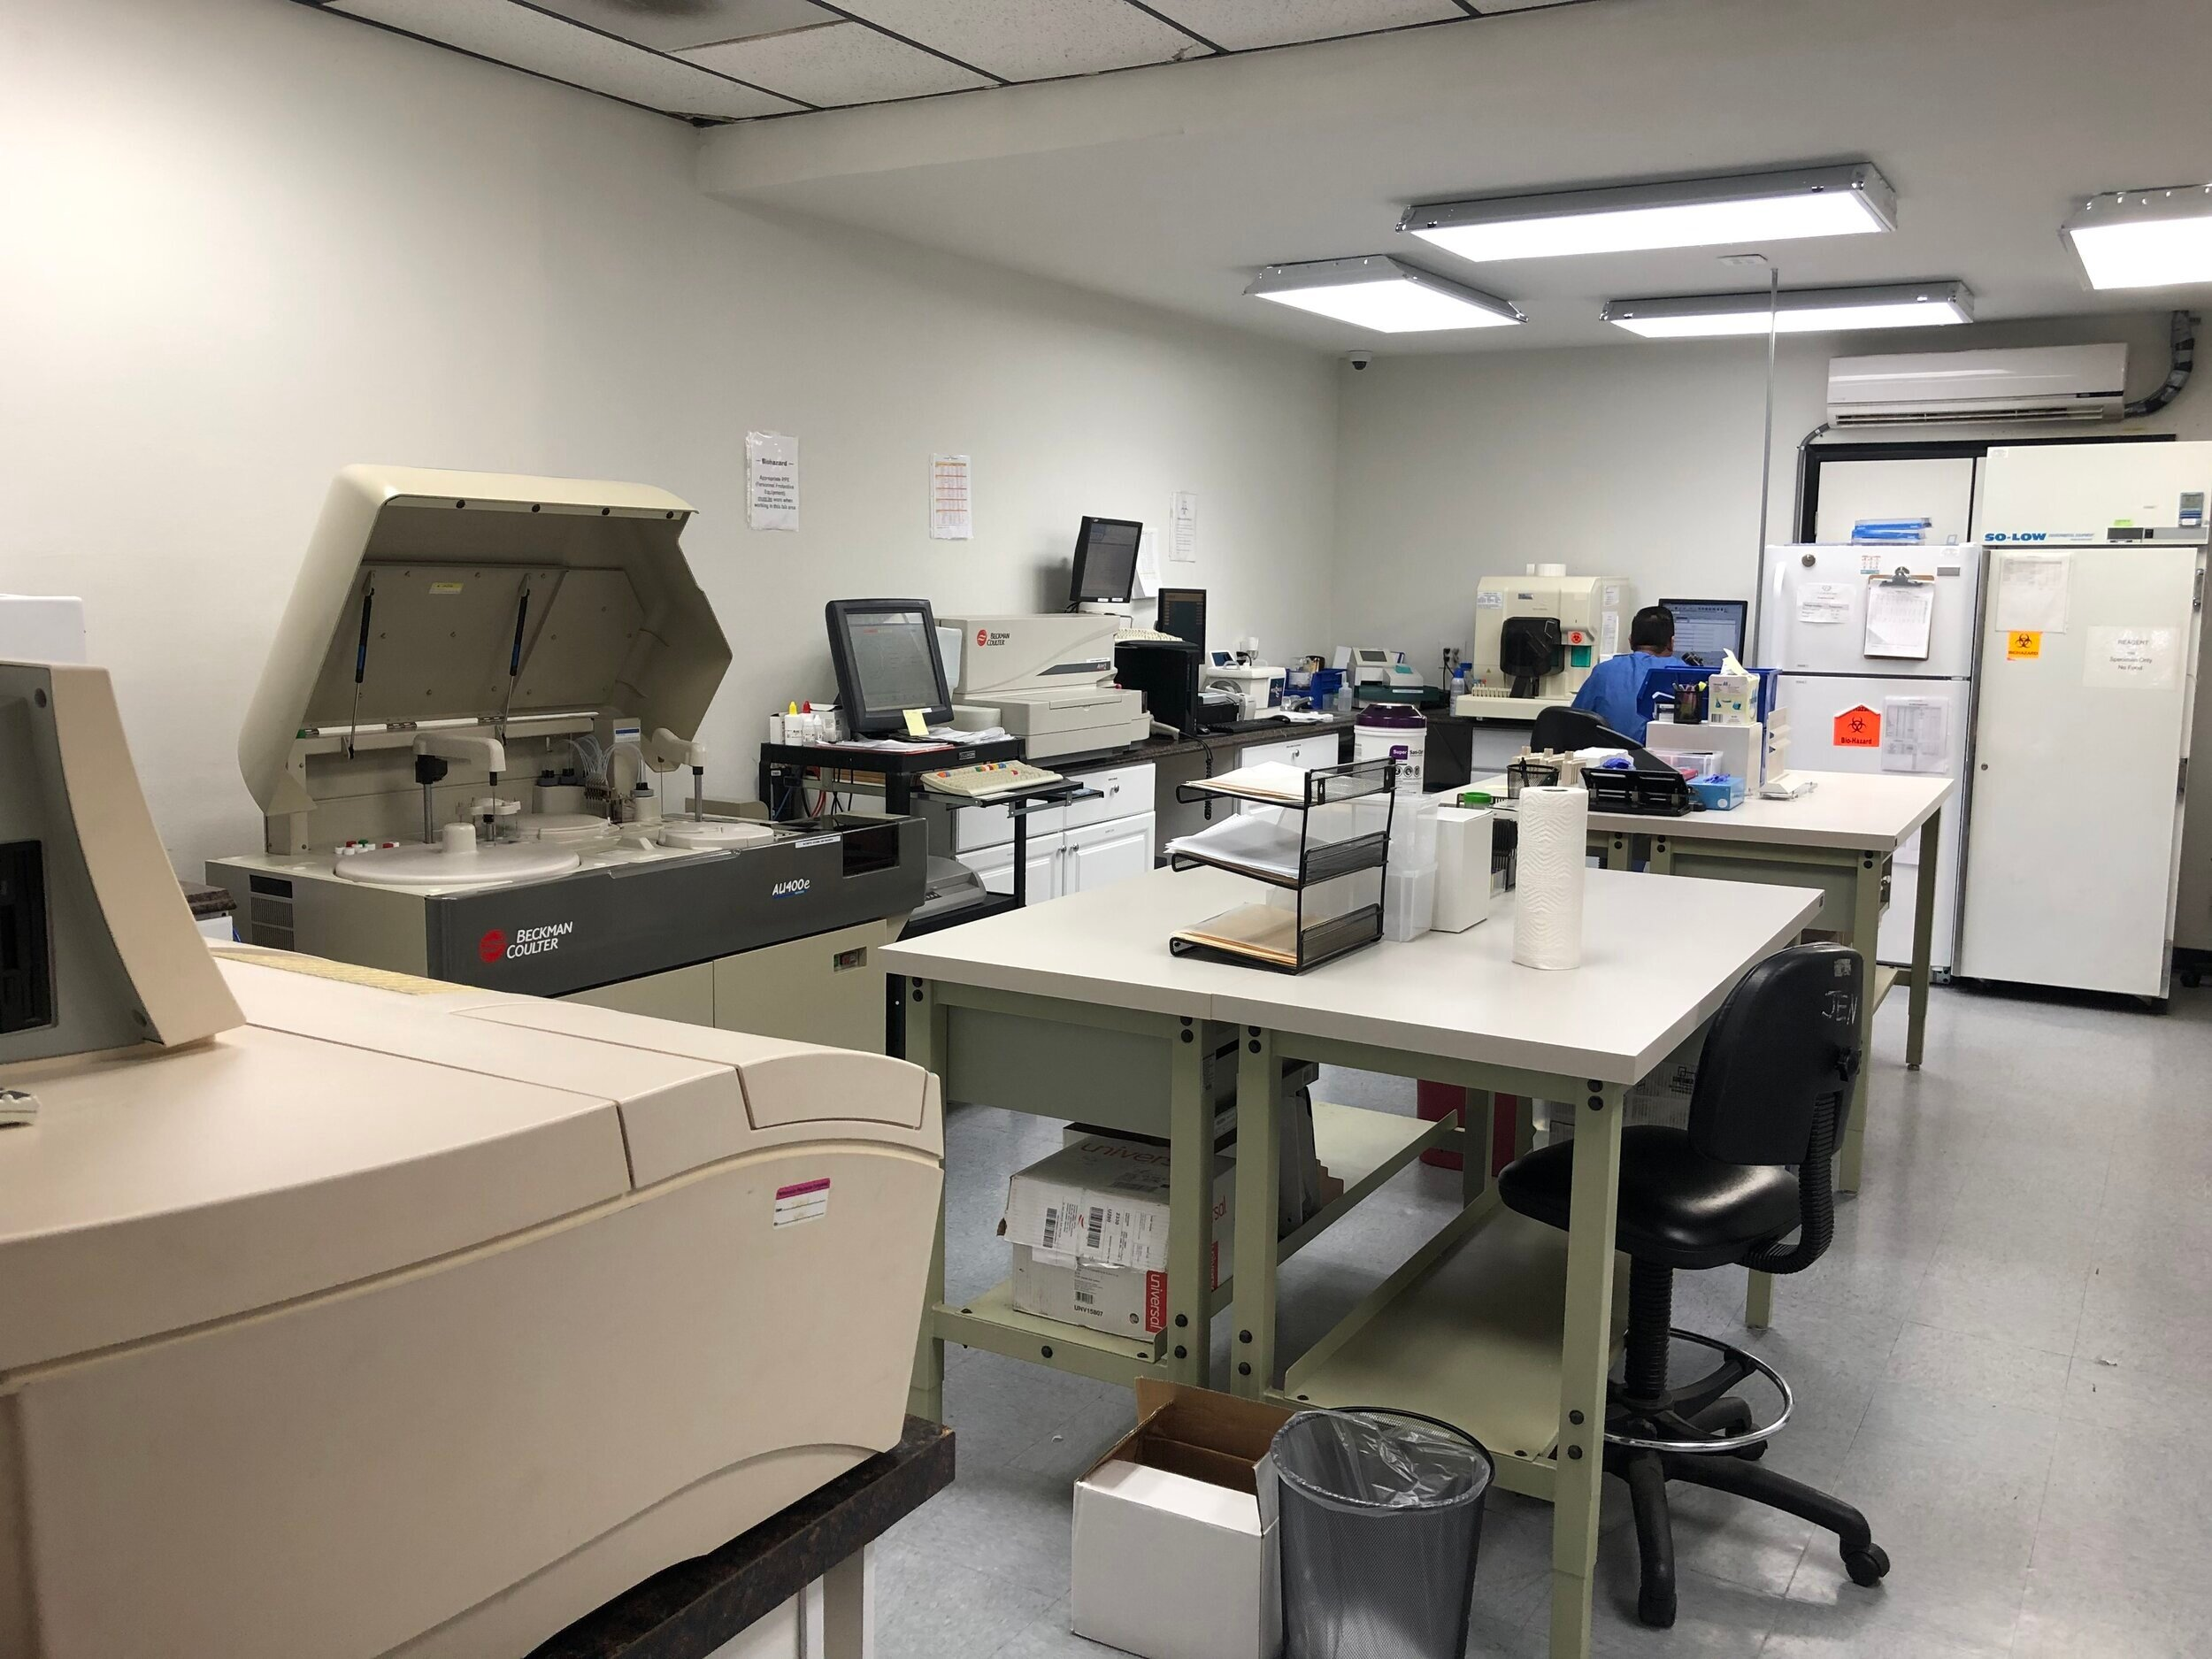 Our Mission - We are dedicated to providing the highest quality, reliable, and cost effective testing solutions for our clients. We believe in continuous improvement to ensure we are ahead in testing technology and efficiency.